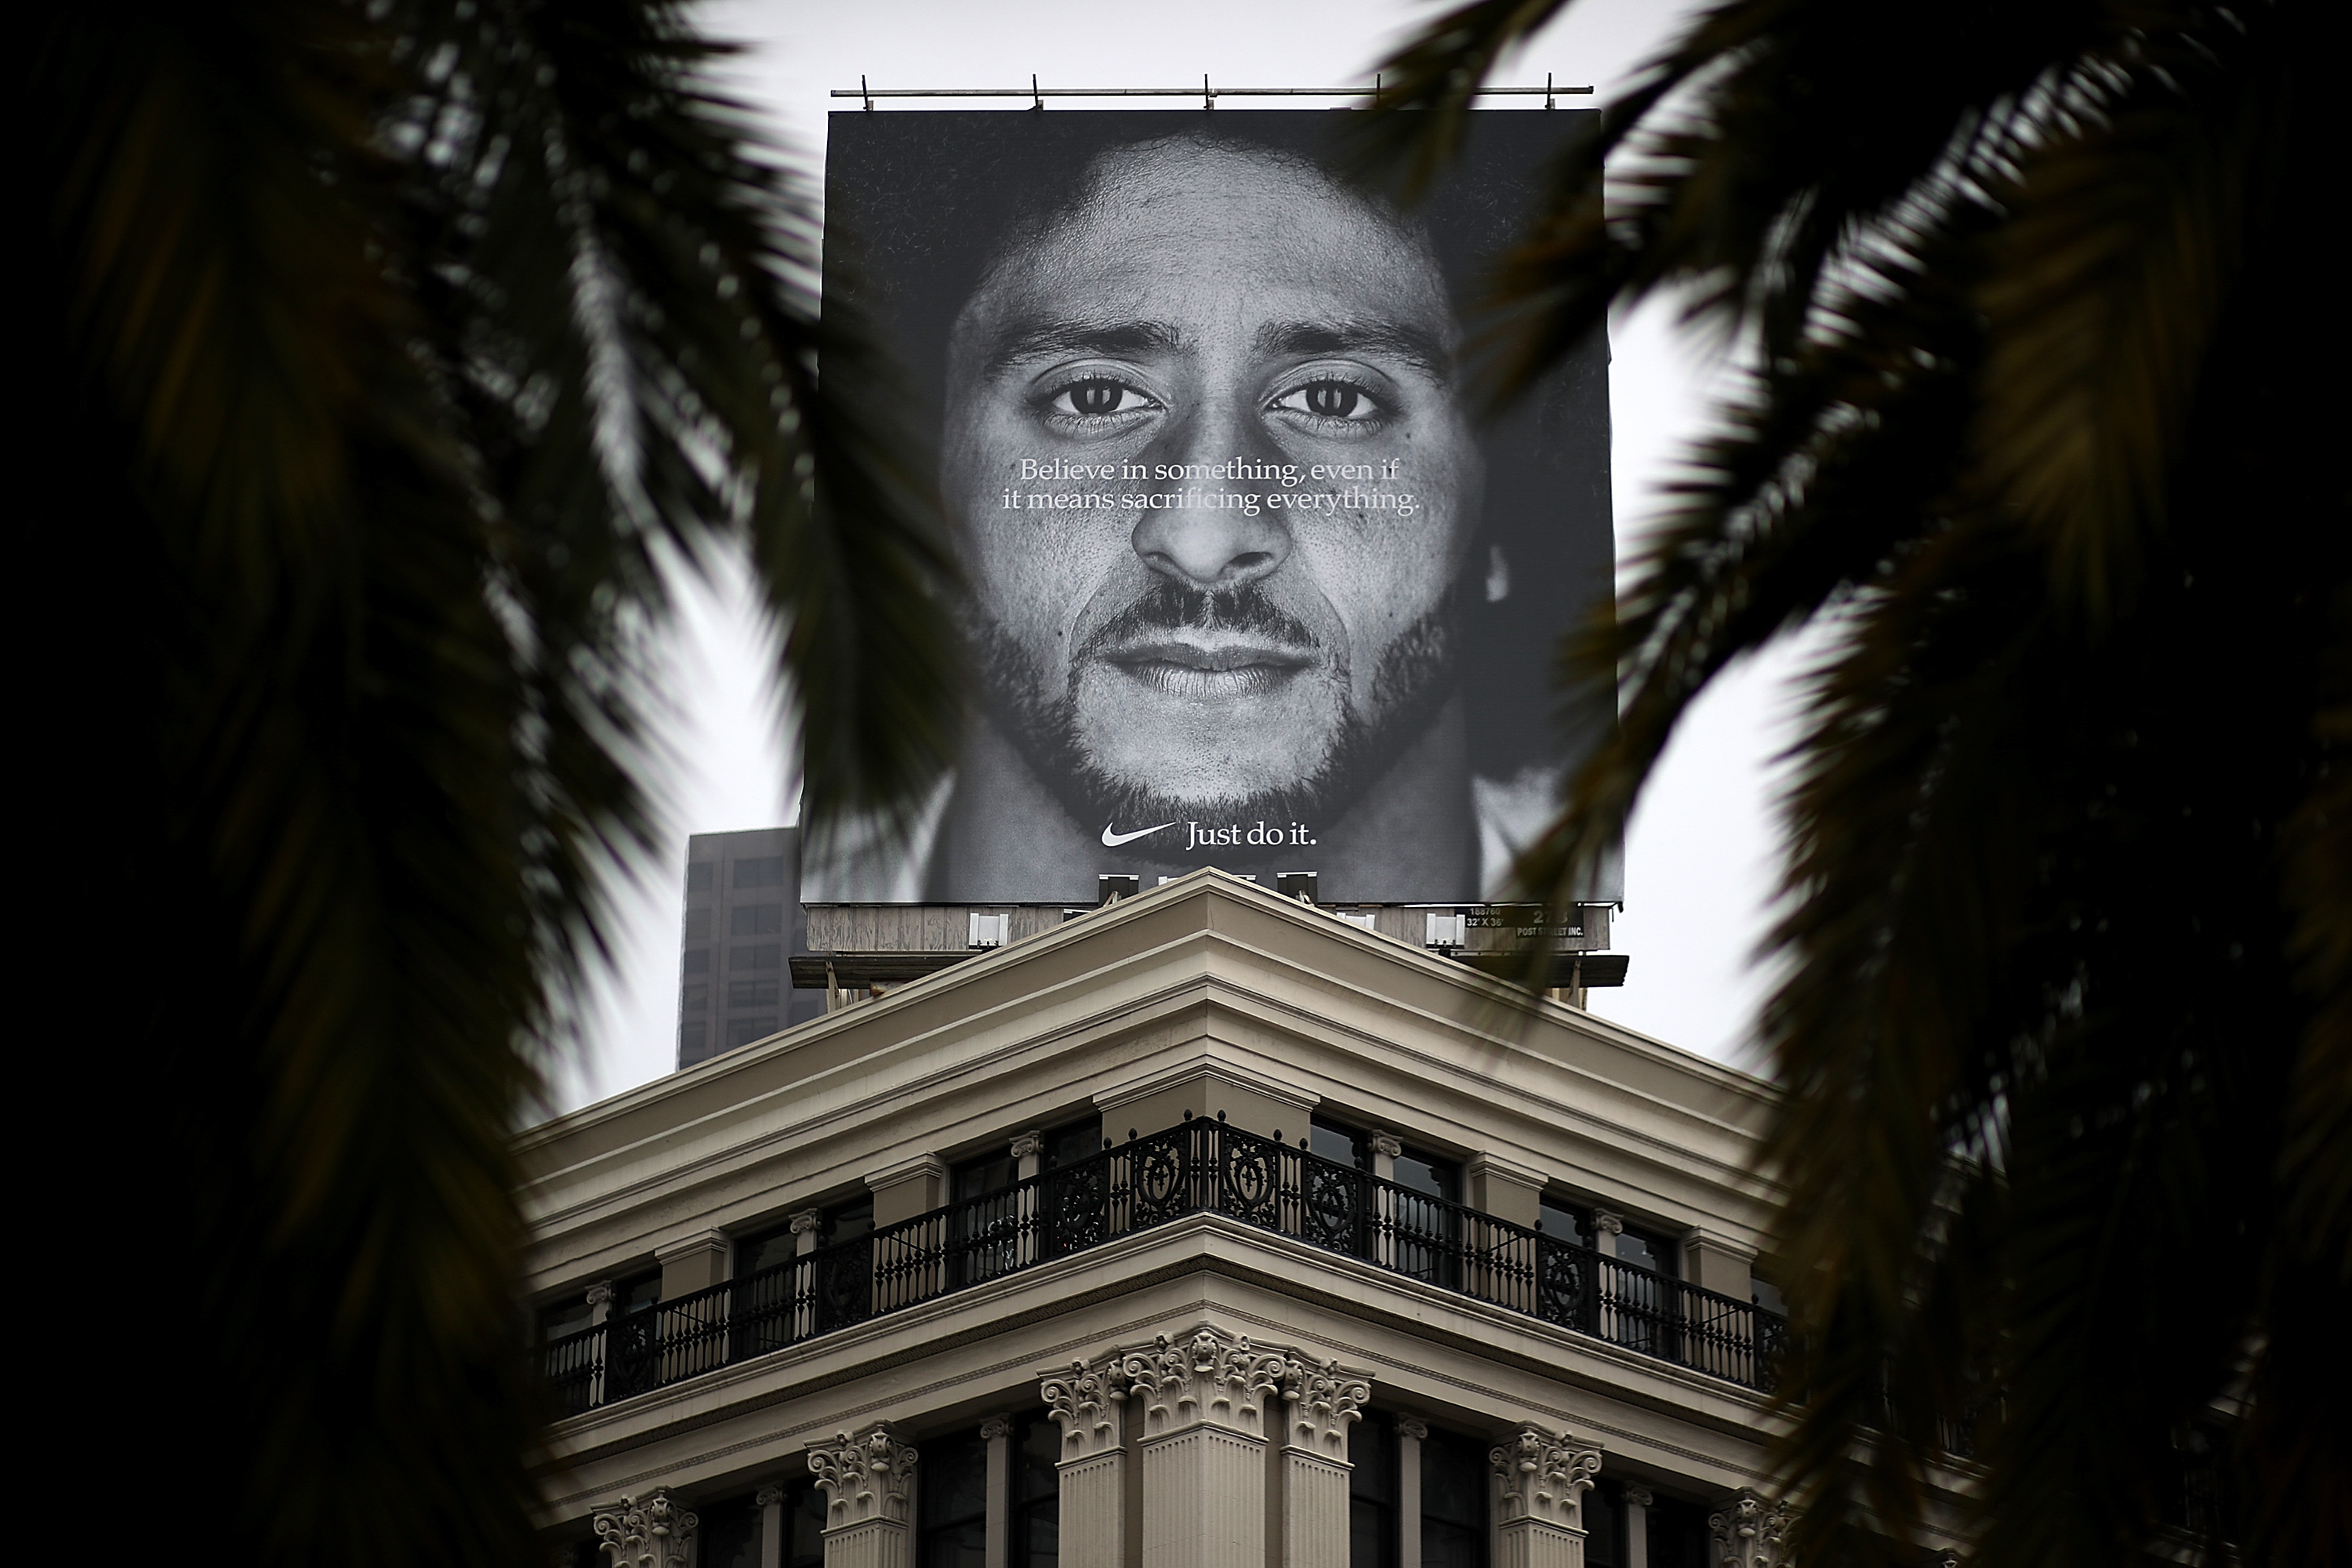 A billboard featuring former San Francisco 49ers quaterback Colin Kaepernick is displayed on the roof of the Nike Store on September 5, 2018 in San Francisco, California. Nike launched an ad campaign to commemorate the 30th anniversary of its iconic 'Just Do It' motto that features controversial former NFL quarterback Colin Kaepernick and a message that says 'Believe in something. Even if it means sacrificing everything.'